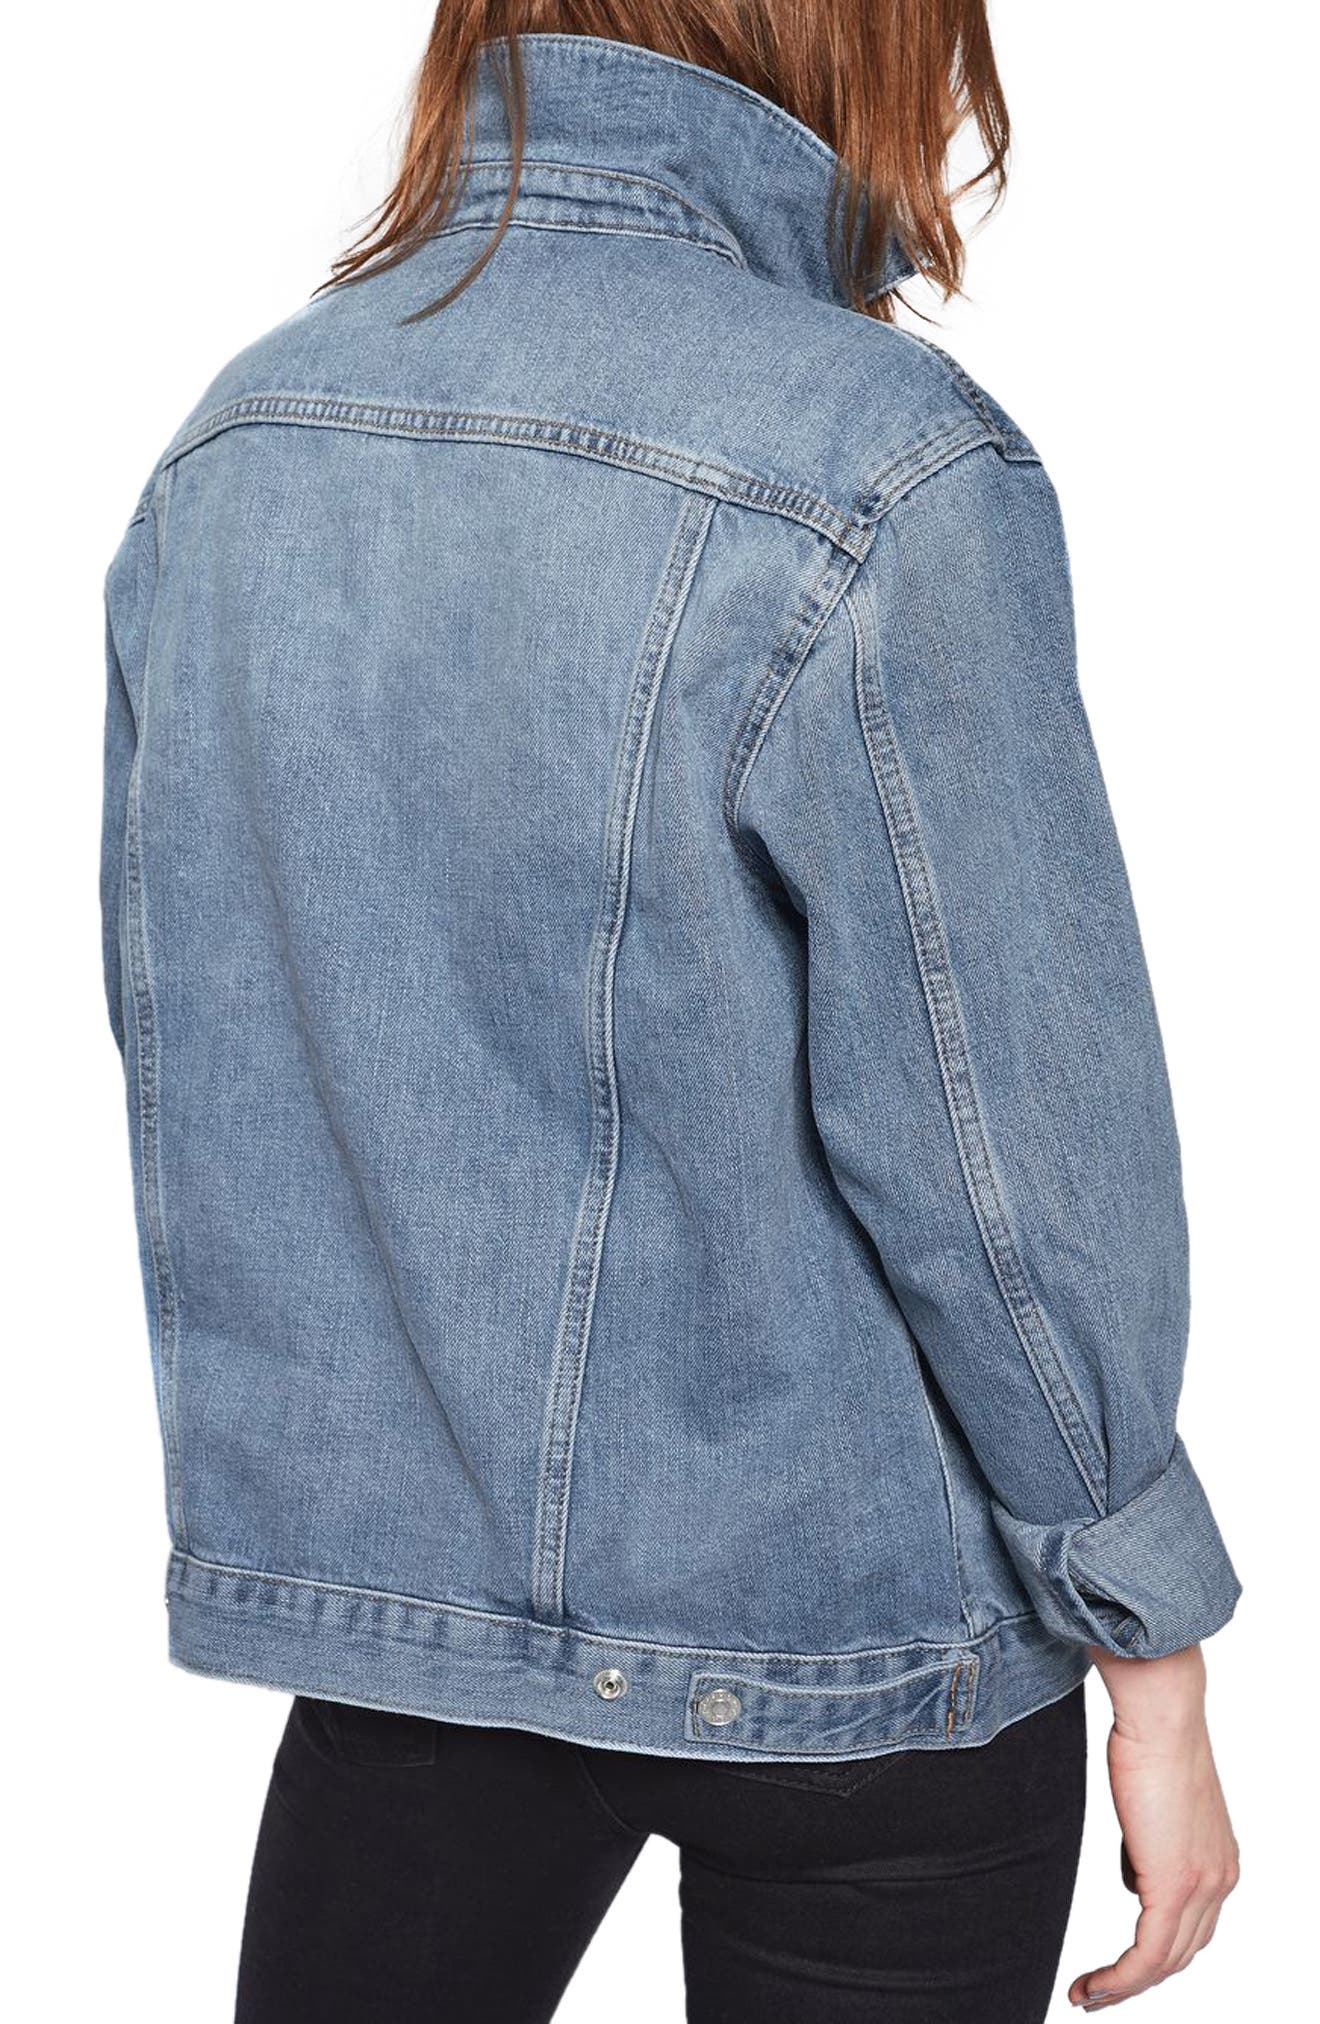 Oversize Denim Jacket,                             Alternate thumbnail 2, color,                             Mid Denim